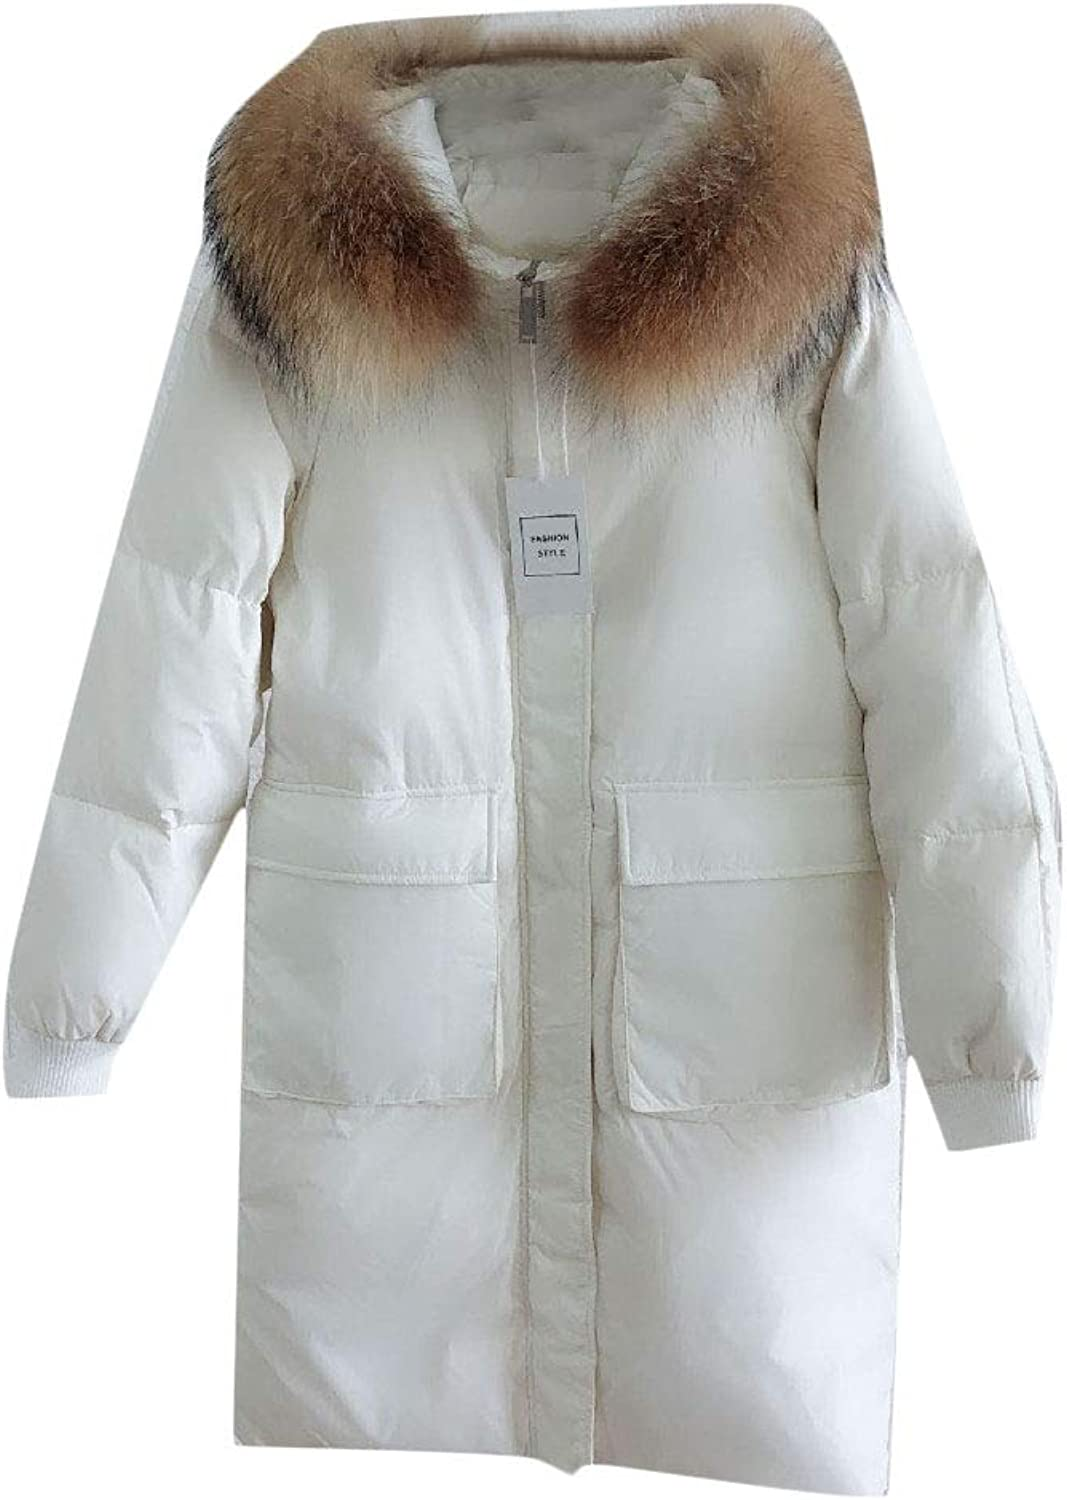 Cobama Women Plus Size Fur Faux Hooded Mid Long Solid Jacket Coat Puffer